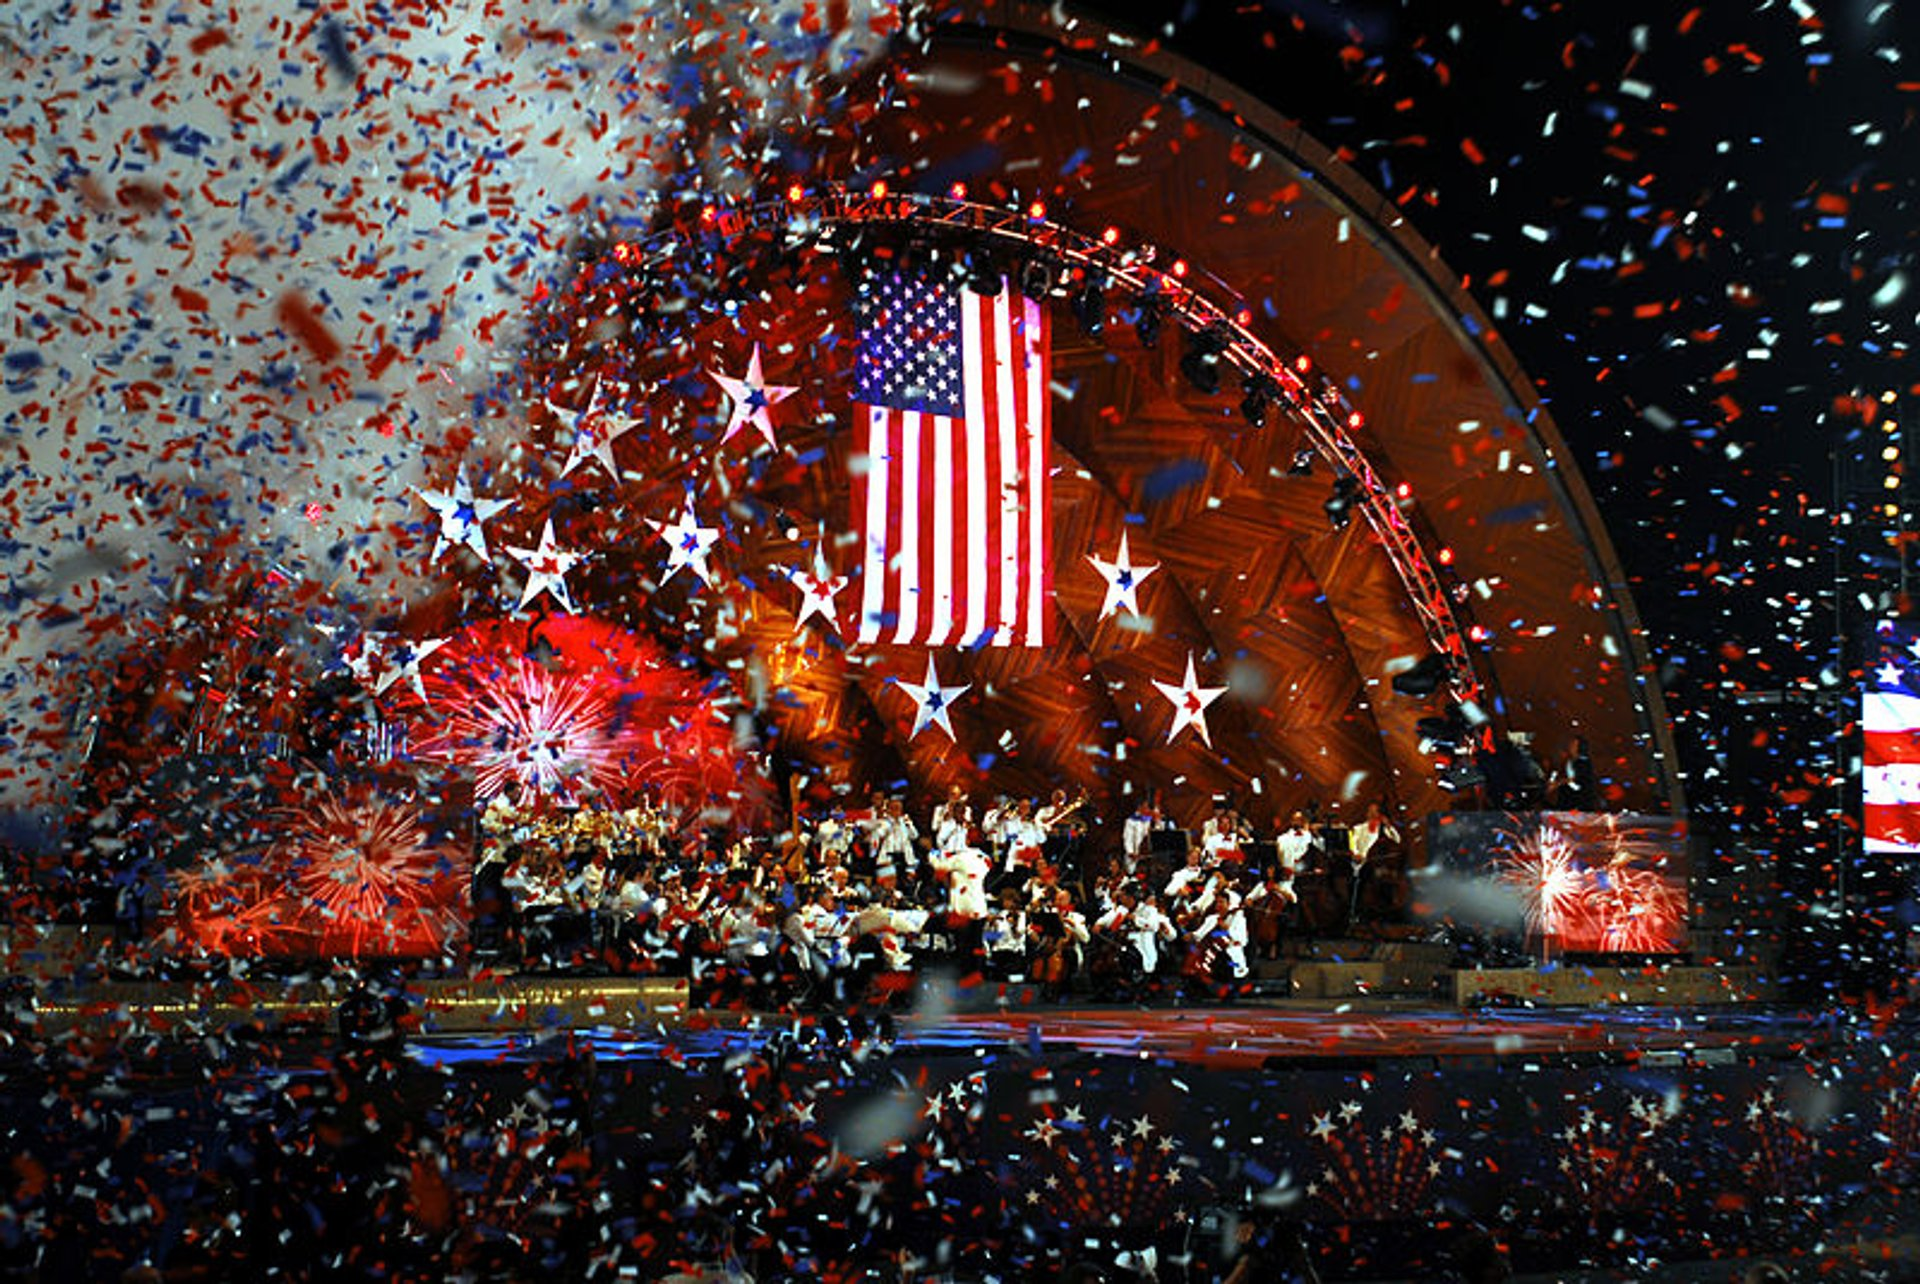 Boston Pops Orchestra and Fireworks Spectacular 2020